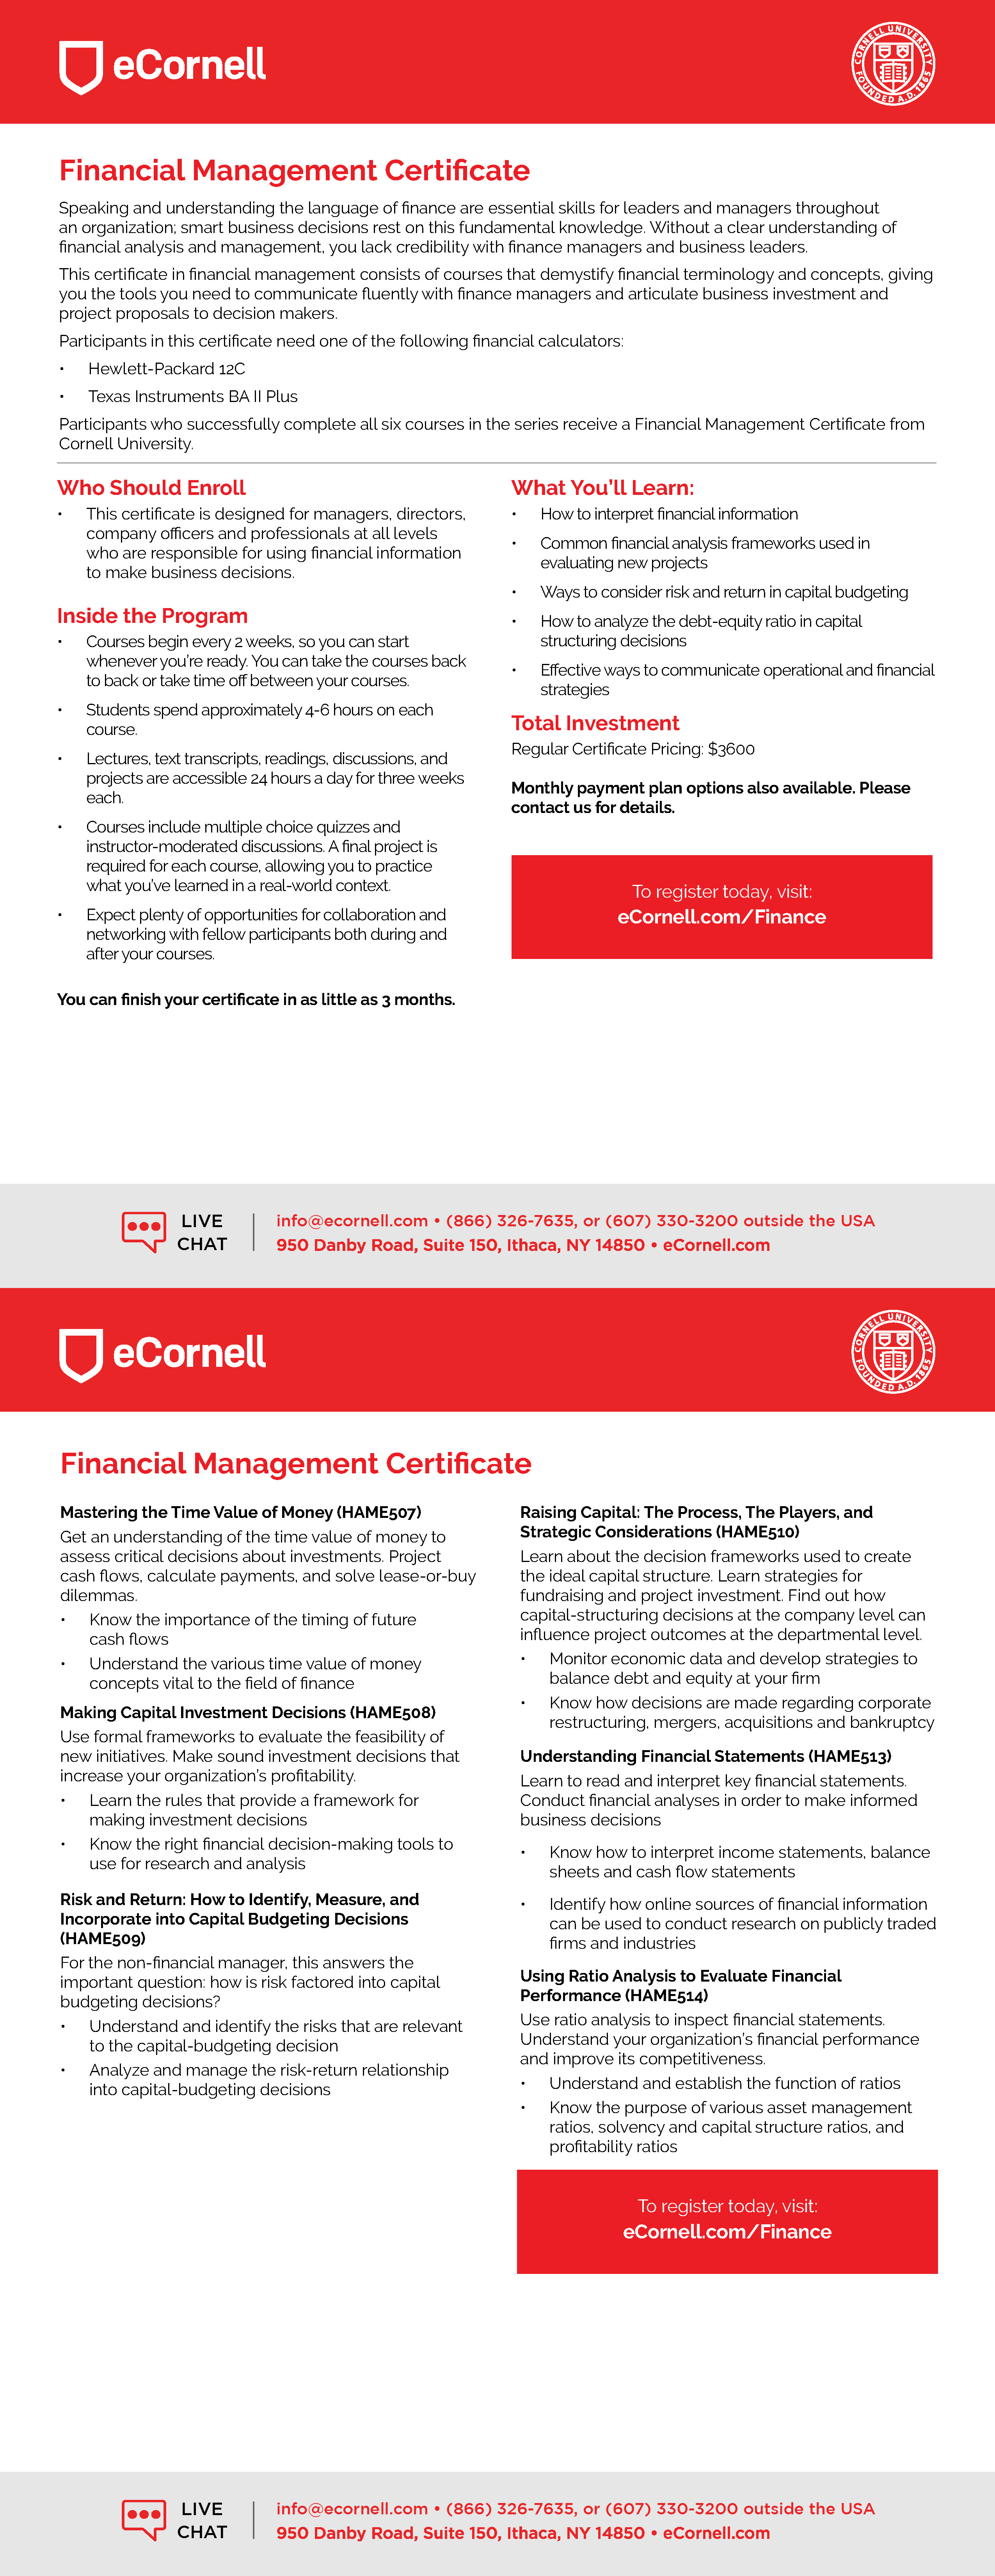 Financial Management Certificate Flyer